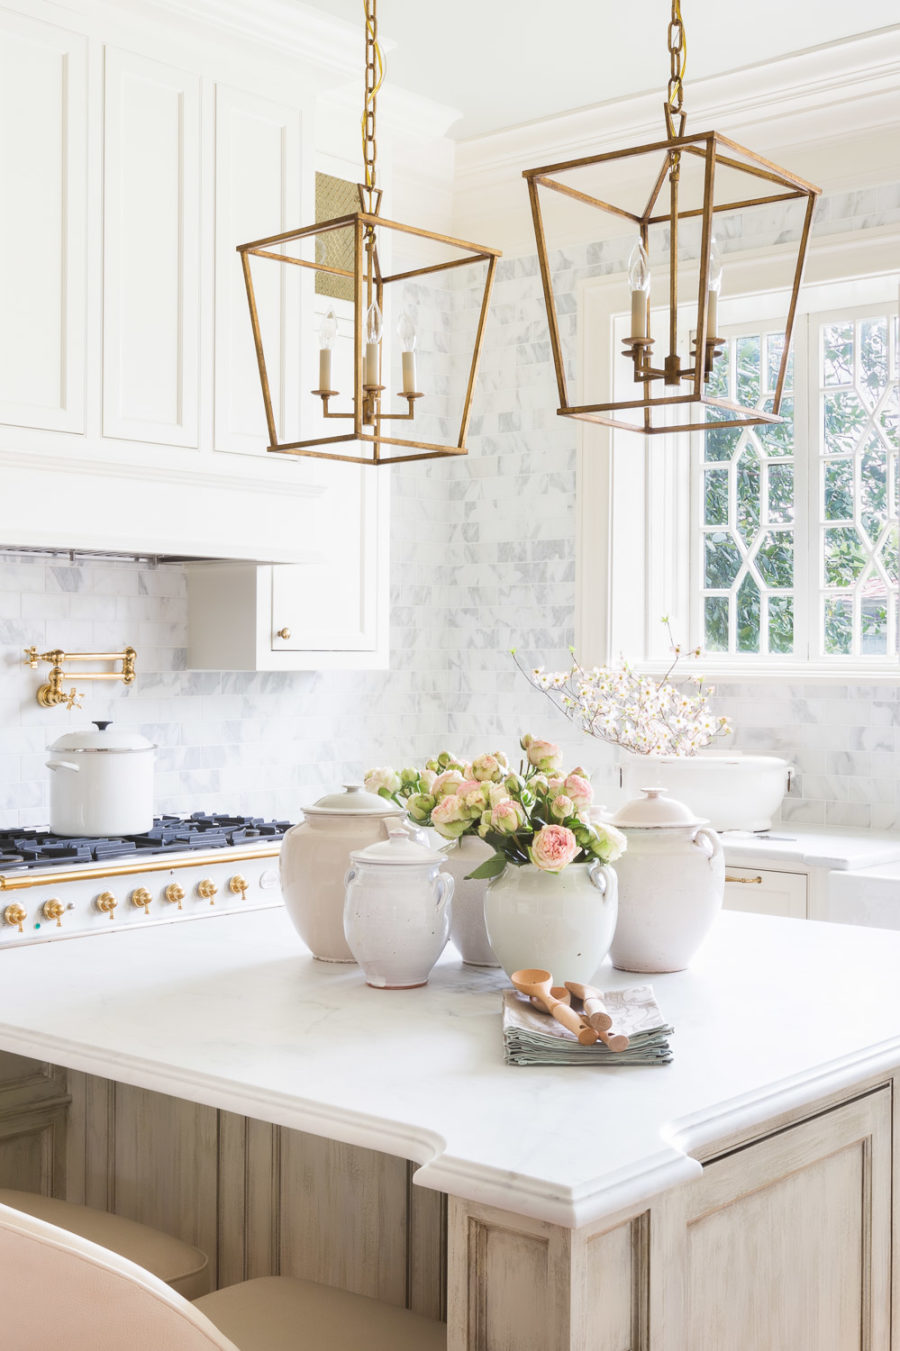 light beige kitchen island is surrounded by white shaker cabinets, white marble countertops and sits underneath two vintage gold pendant llights